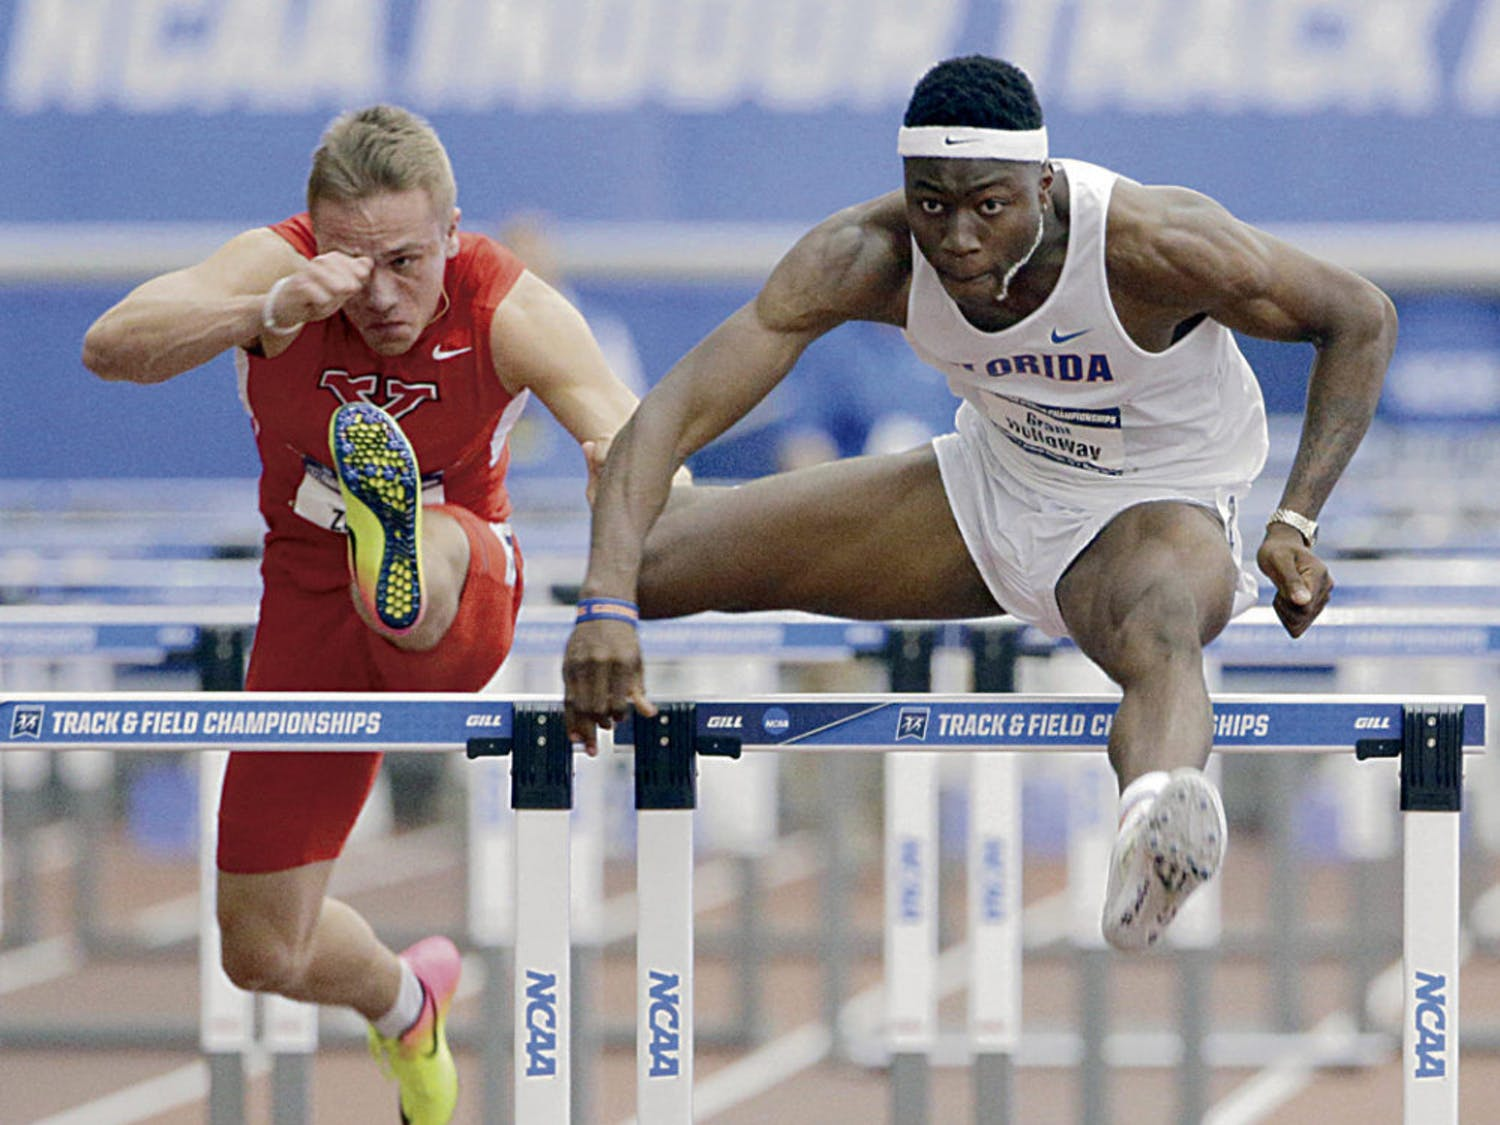 Grant Holloway competes in the 60-meter hurdles final at the 2017 NCAA Outdoor Championships in Eugene, Oregon.